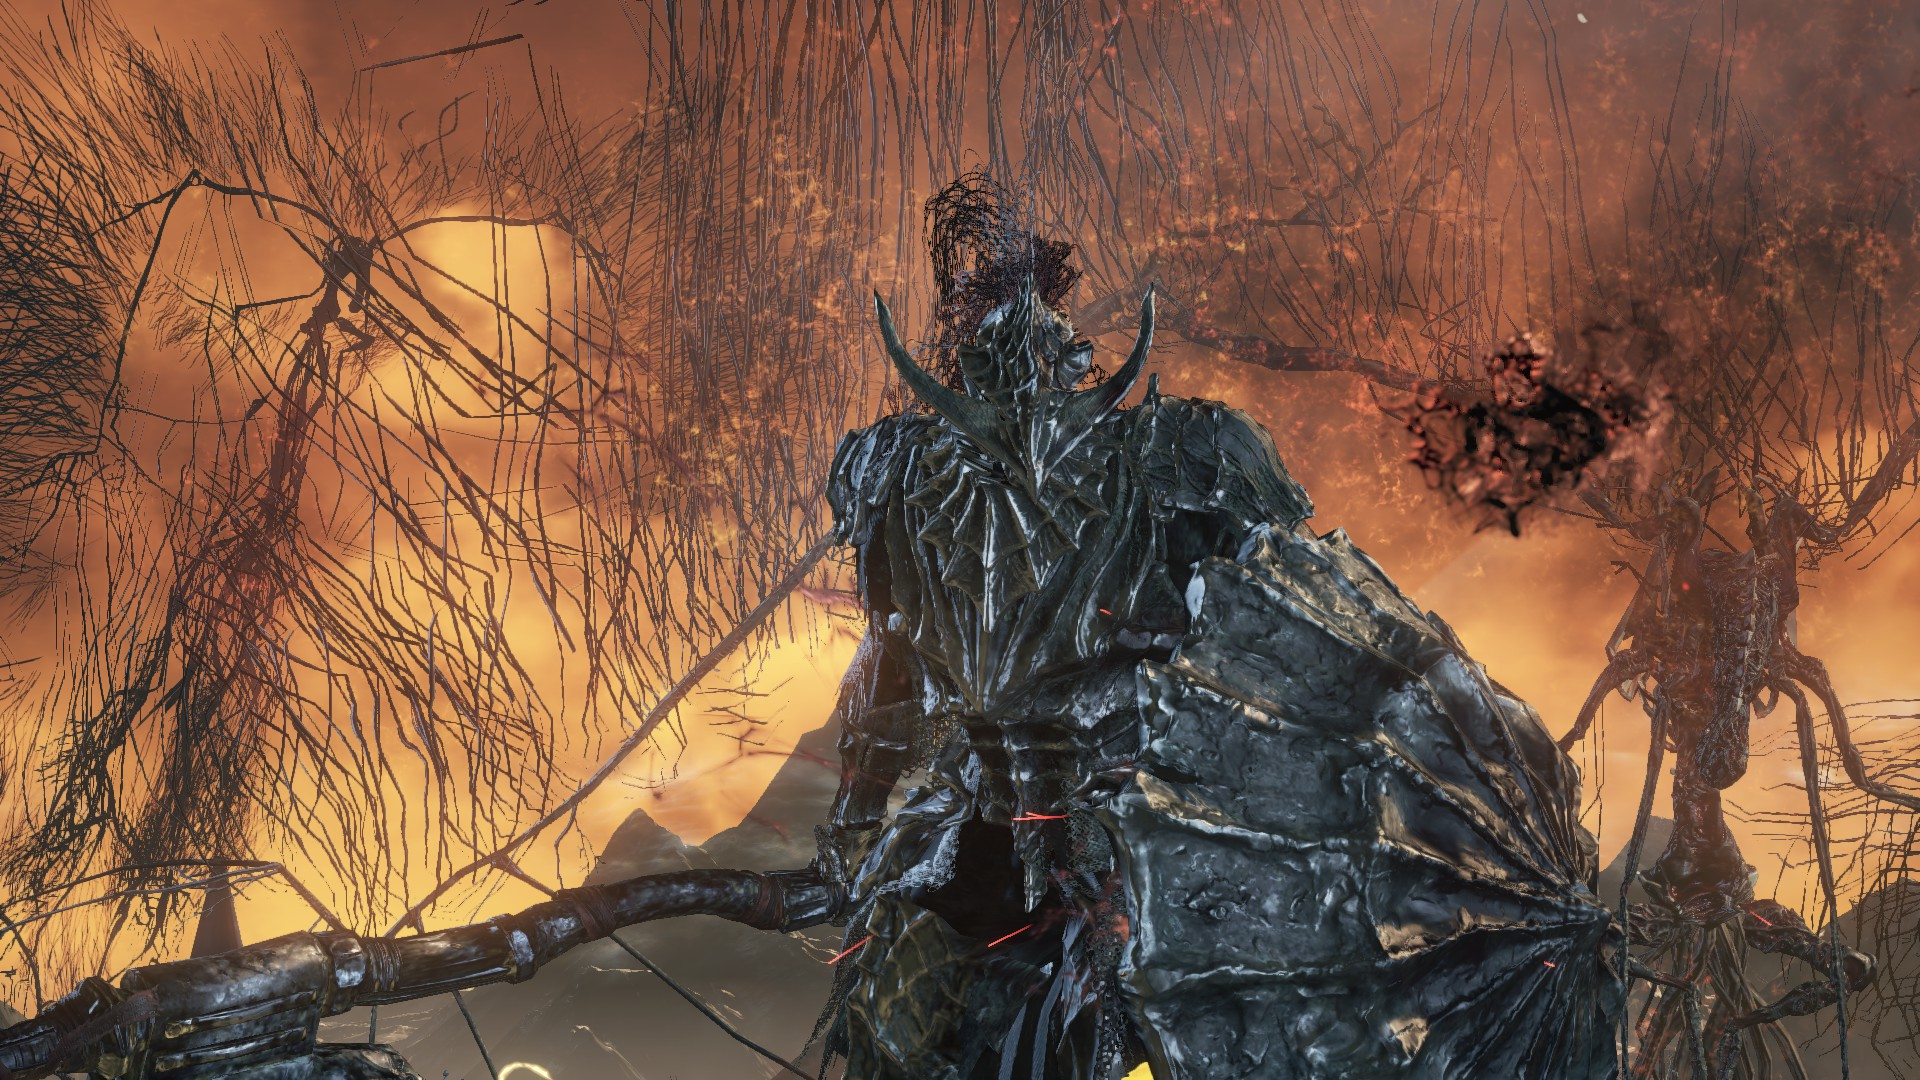 5 Things We Learned About Dark Souls 2 From Today S: One Player's Six-Year Quest To Wear An Iconic 'Dark Souls